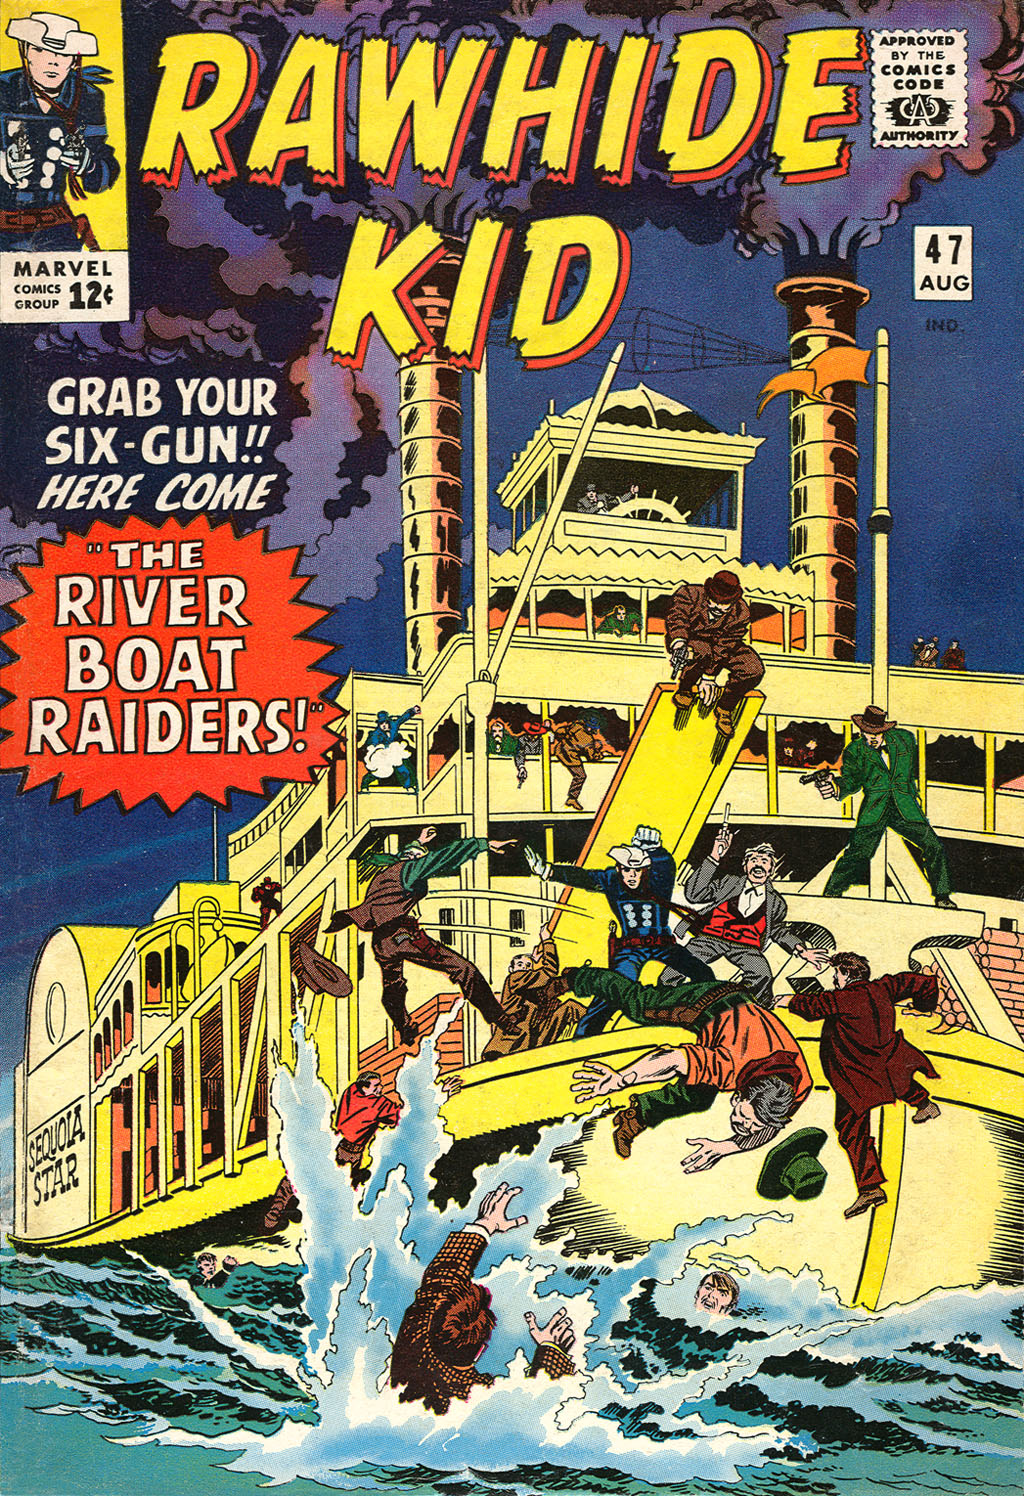 The Rawhide Kid (1955) issue 47 - Page 1